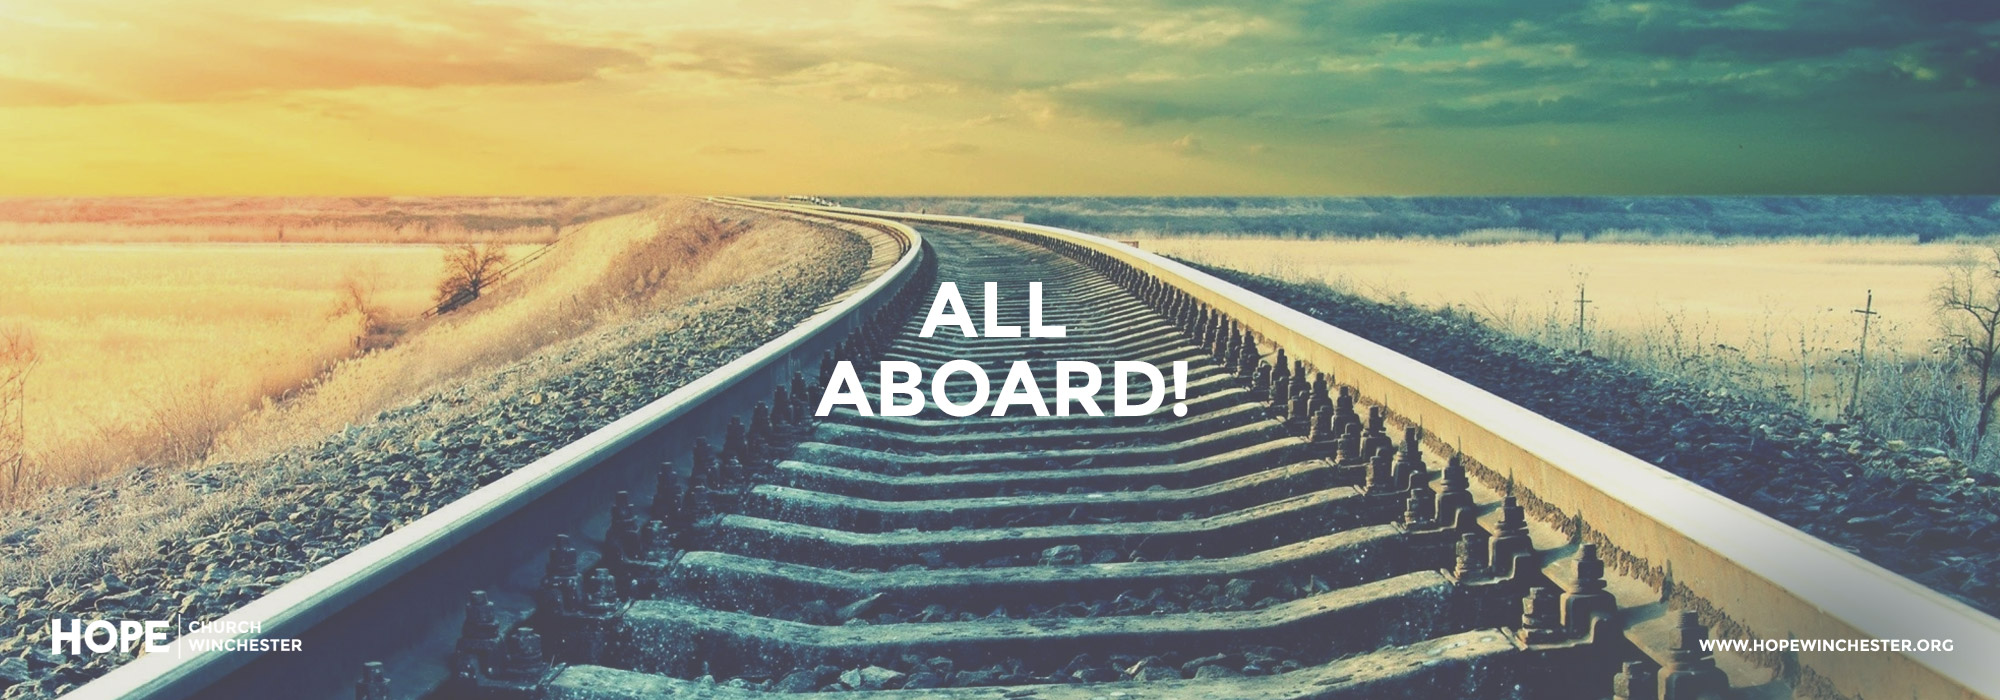 w-events-all-aboard